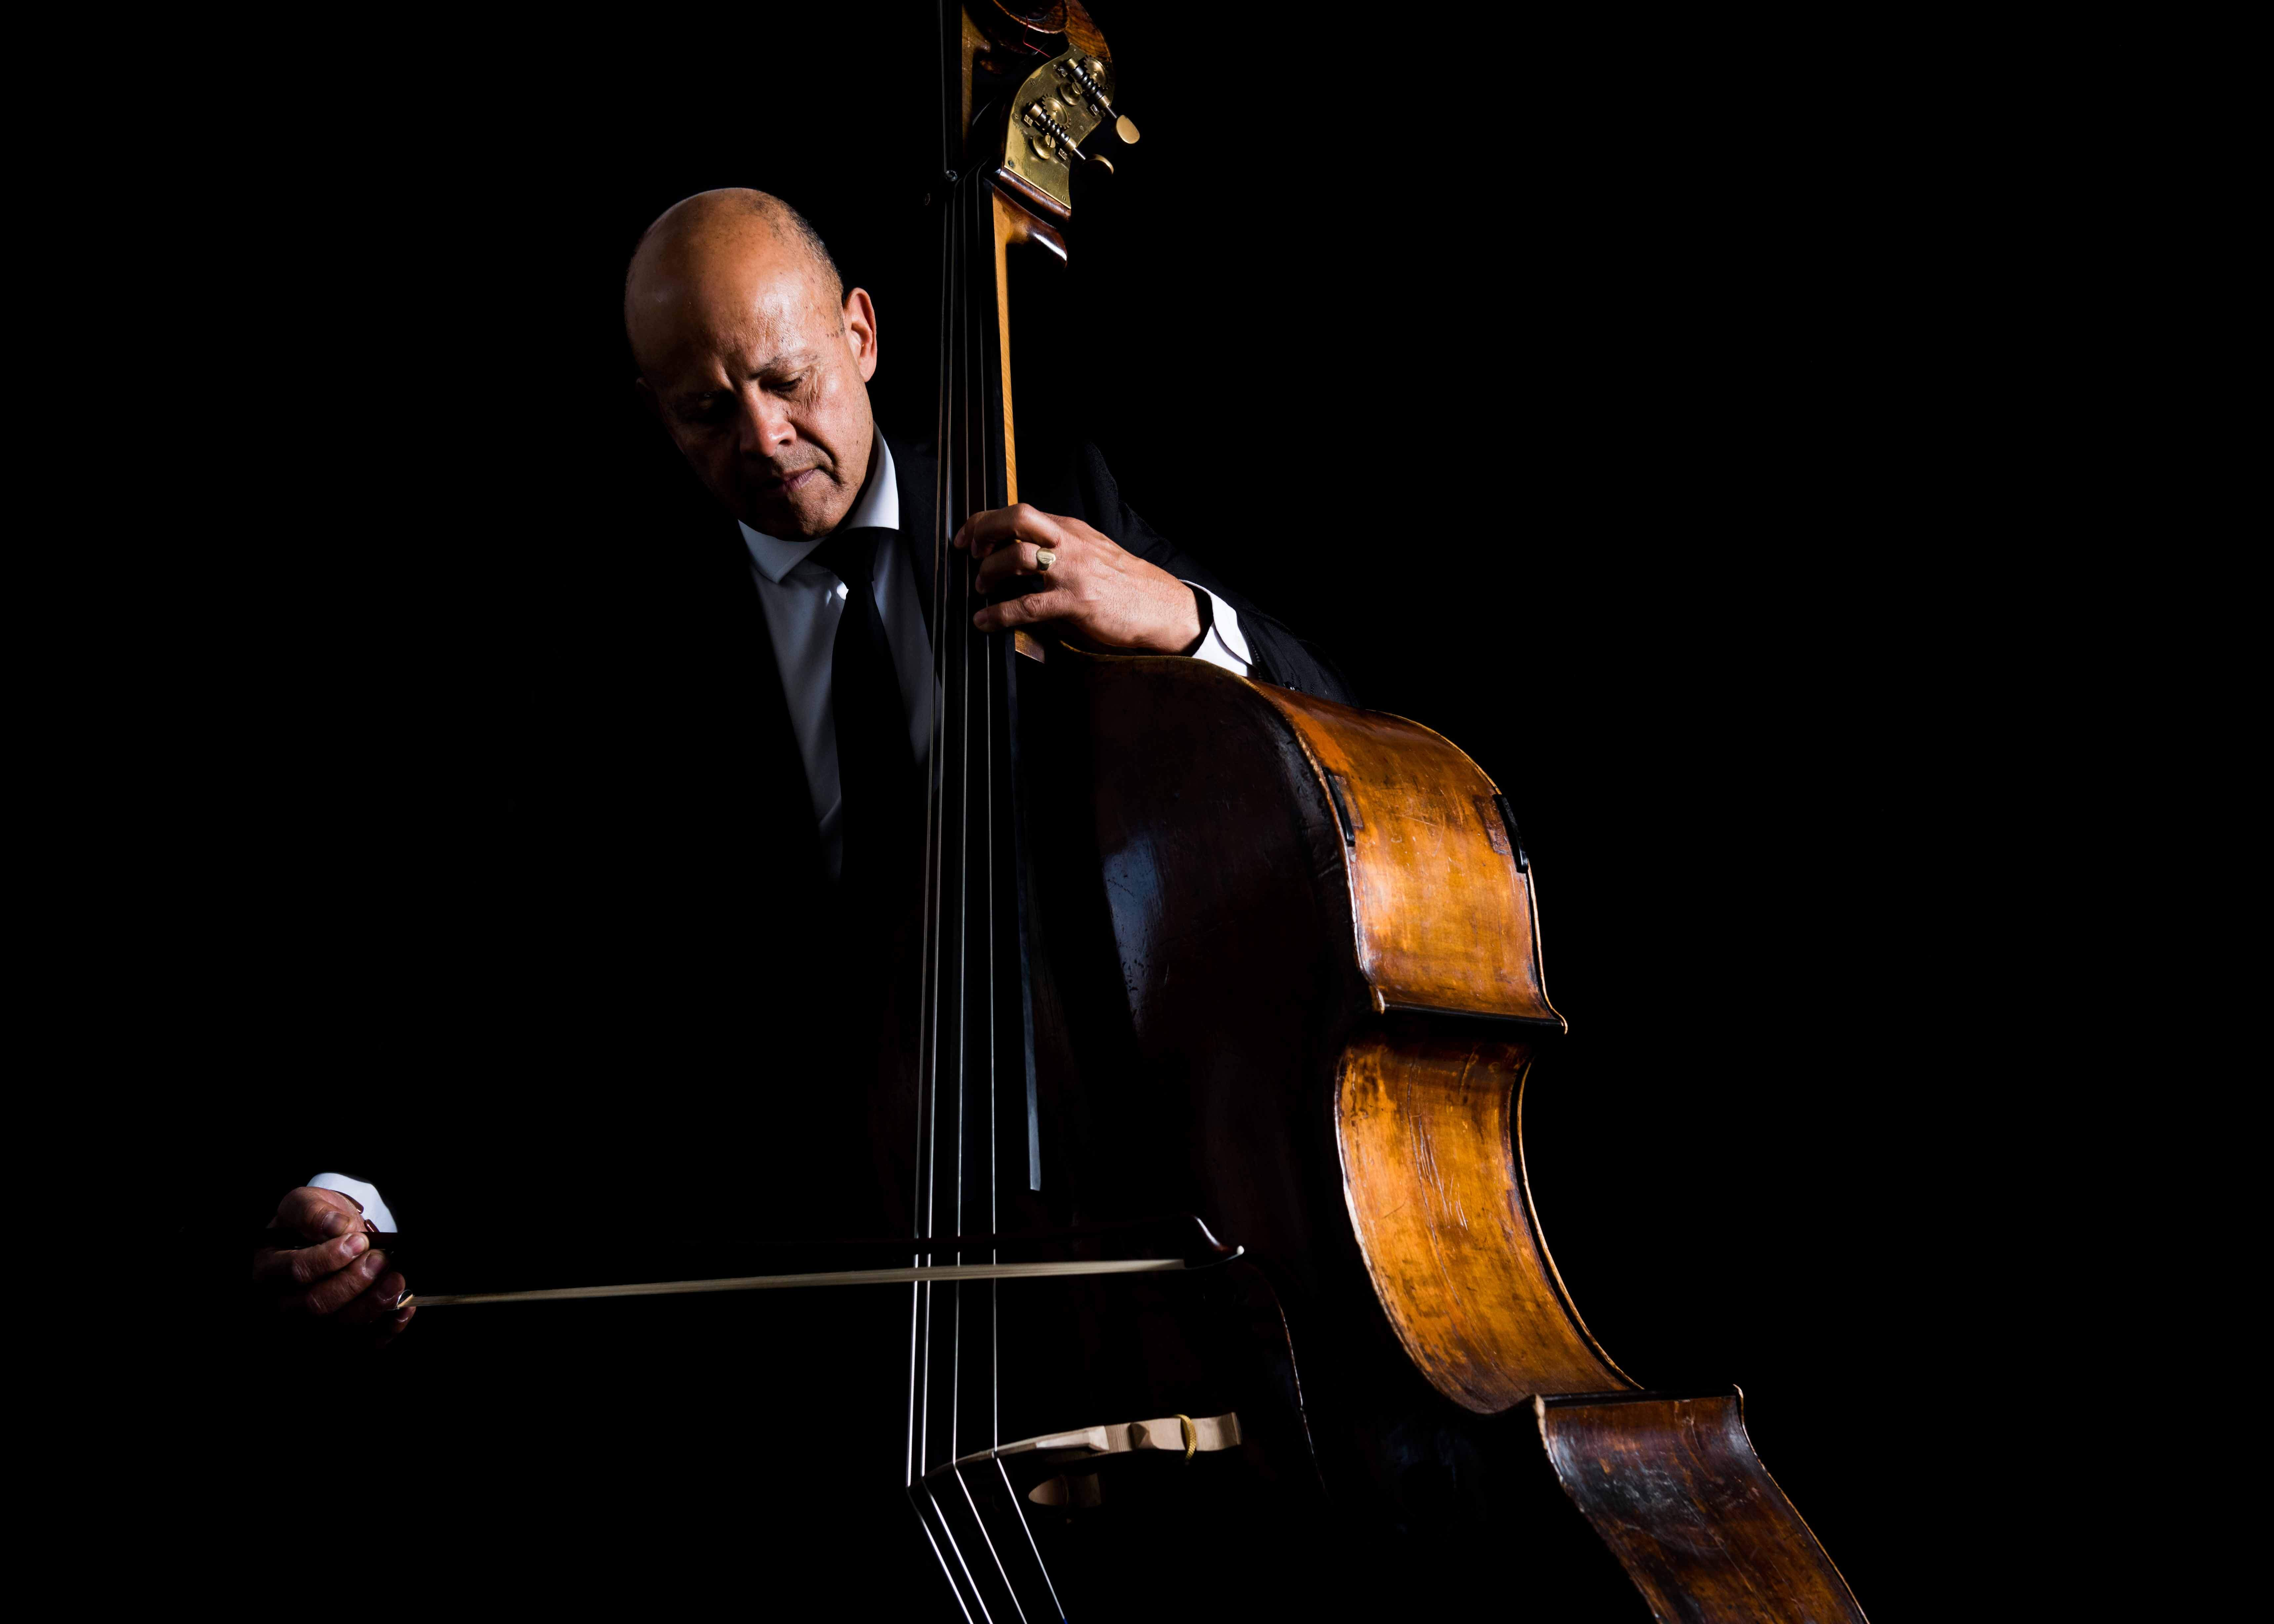 Famous Double Bassist Leon Bosch playing his instrument in the dark.